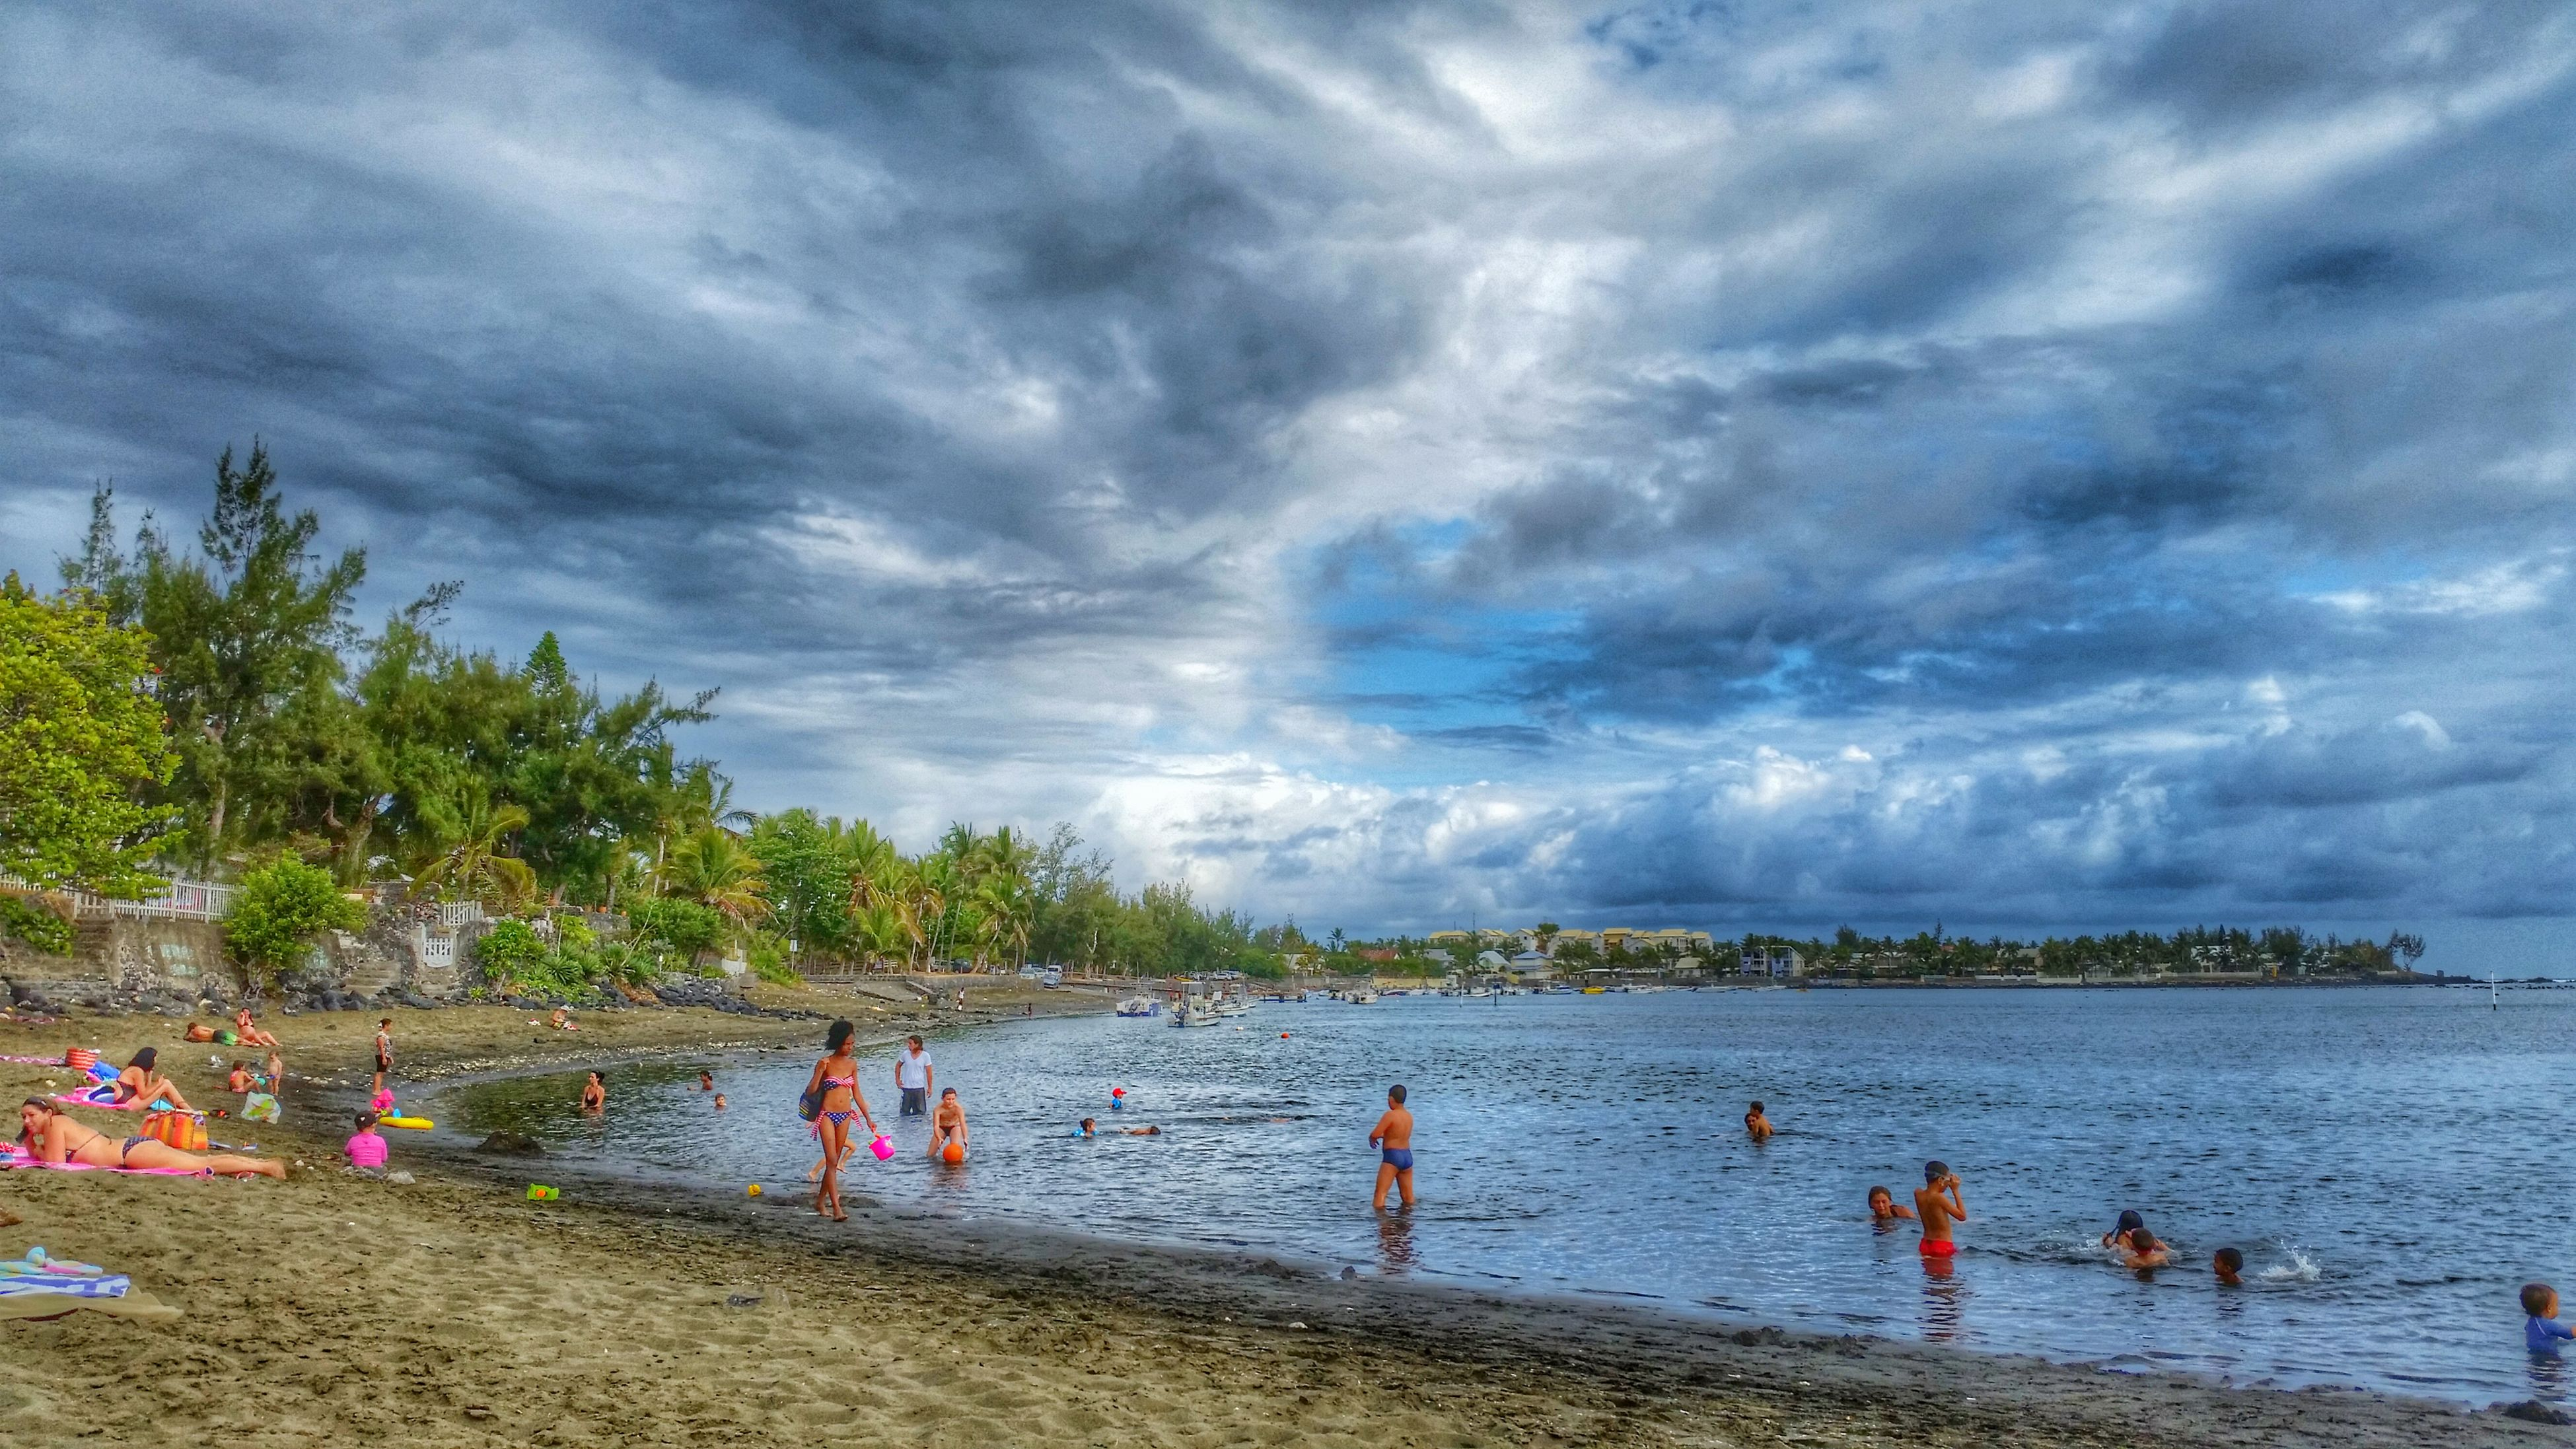 water, sky, beach, cloud - sky, sea, large group of people, lifestyles, leisure activity, cloudy, shore, vacations, mixed age range, beauty in nature, nature, scenics, person, enjoyment, tranquil scene, tranquility